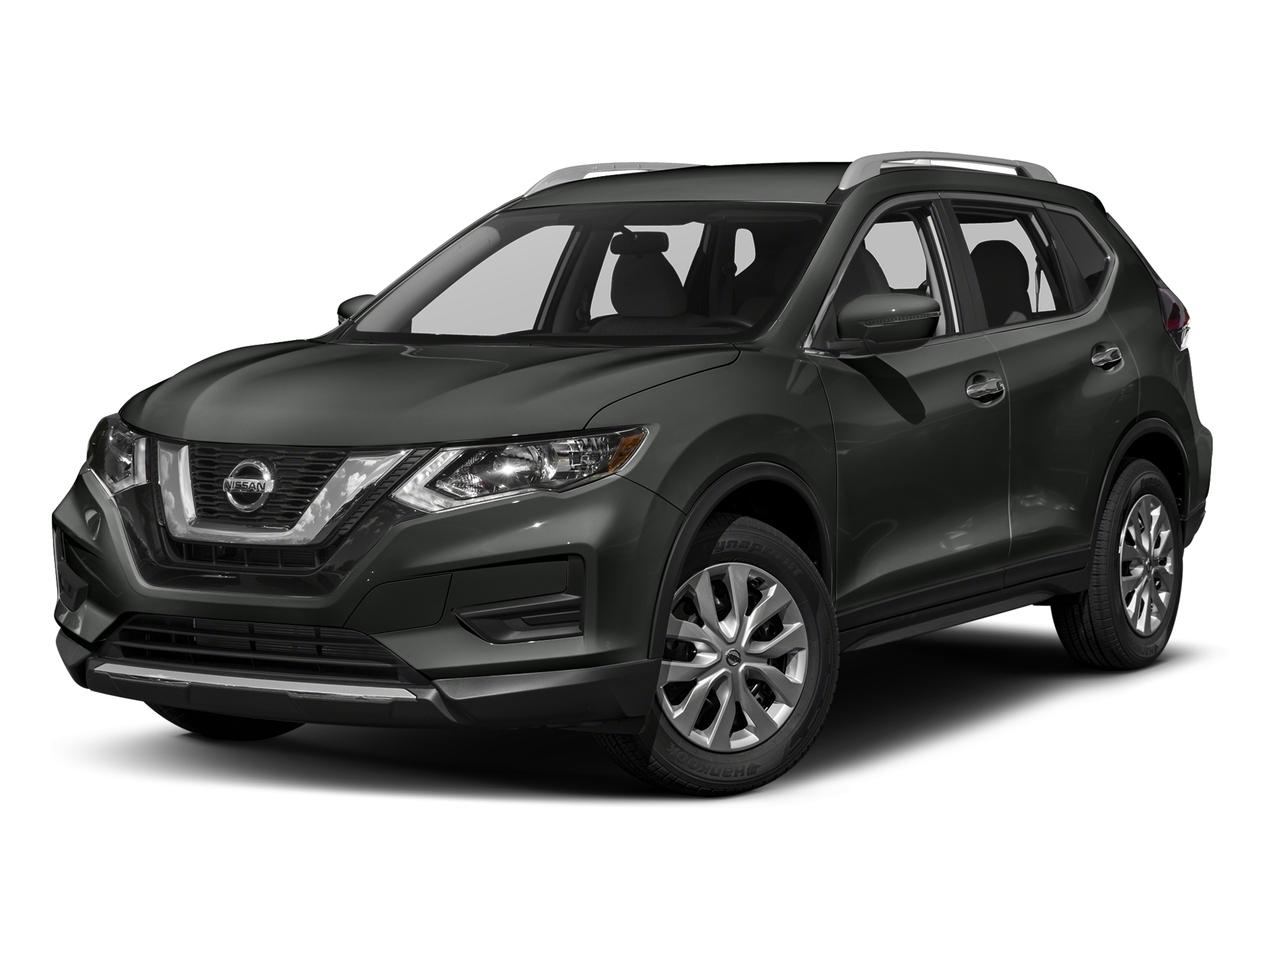 2017 Nissan Rogue Vehicle Photo in TEMPLE, TX 76504-3447